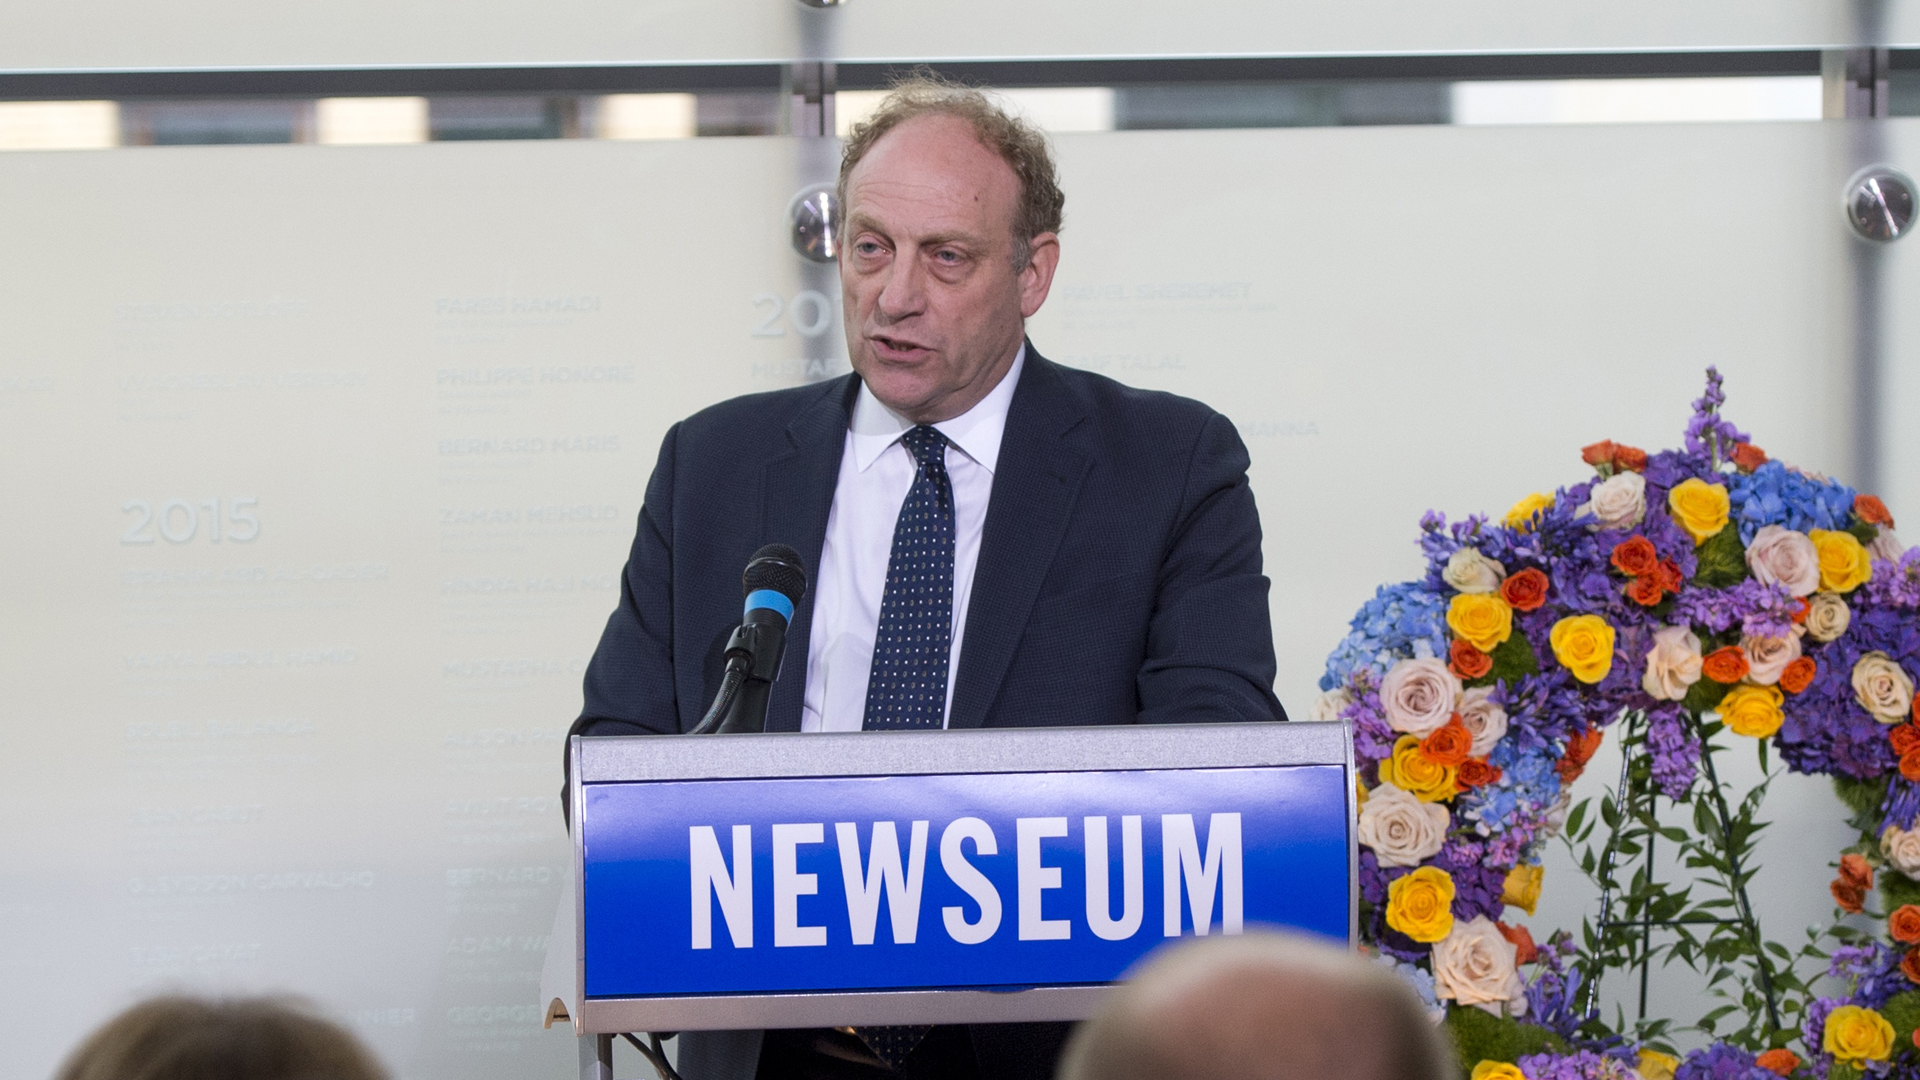 Michael Oreskes, senior vice president of news and editorial director of National Public Radio, speaks during the rededication of the Journalists Memorial at the Newseum in Washington, DC, June 5, 2017. (Credit: Saul Loeb / AFP / Getty Images)